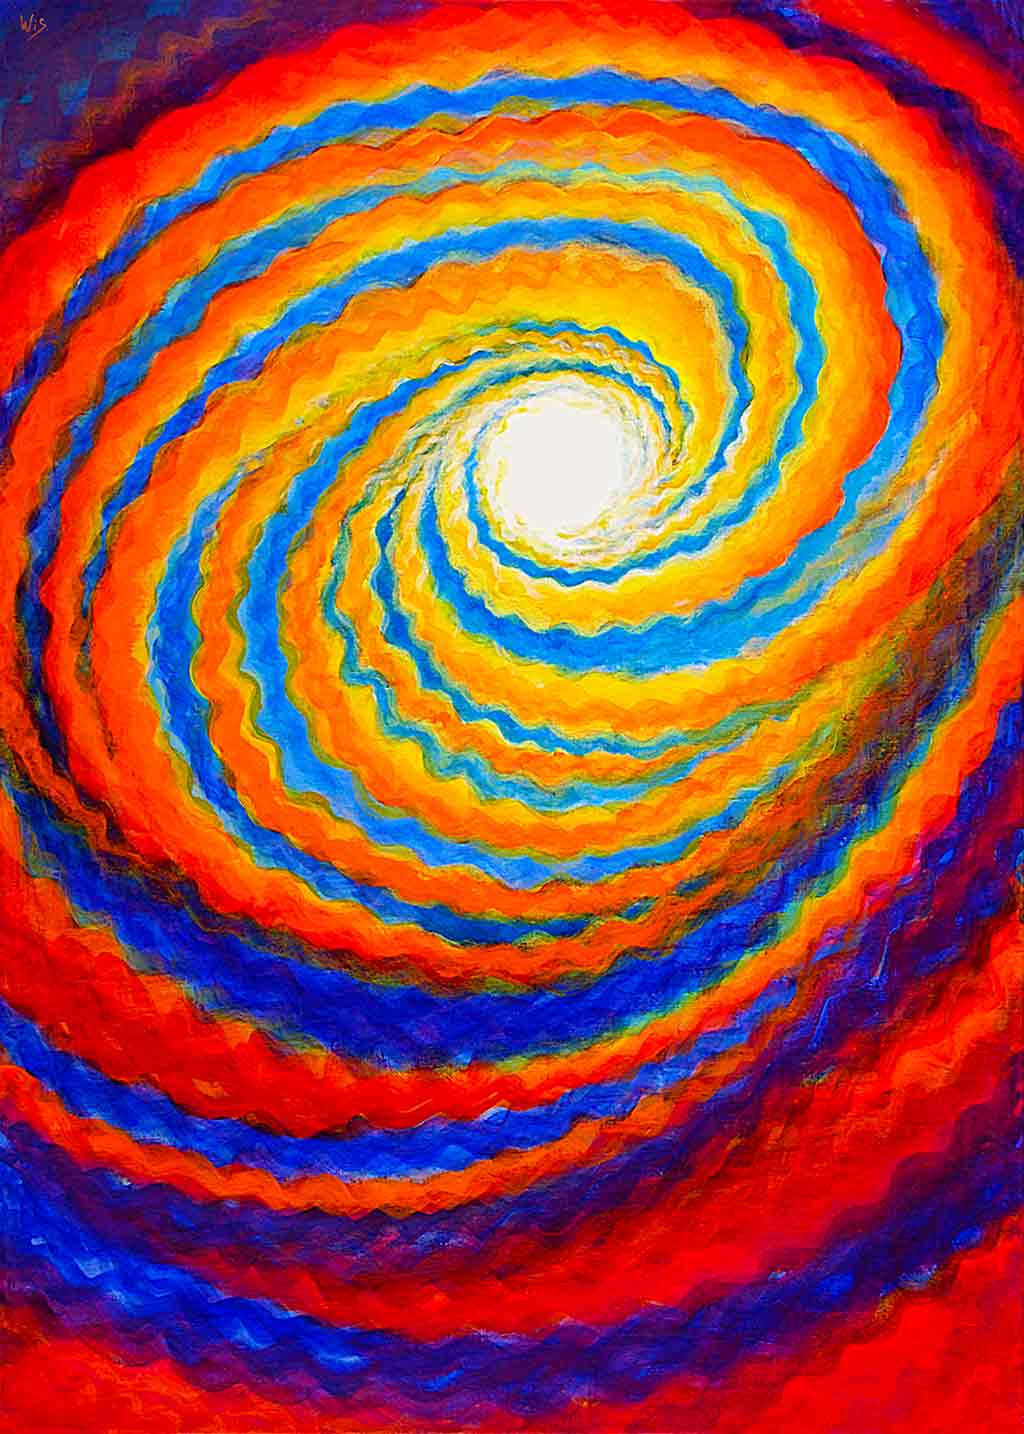 Spiral Field, oil painting on canvas and Art Canvas Print by Wieslaw Sadurski